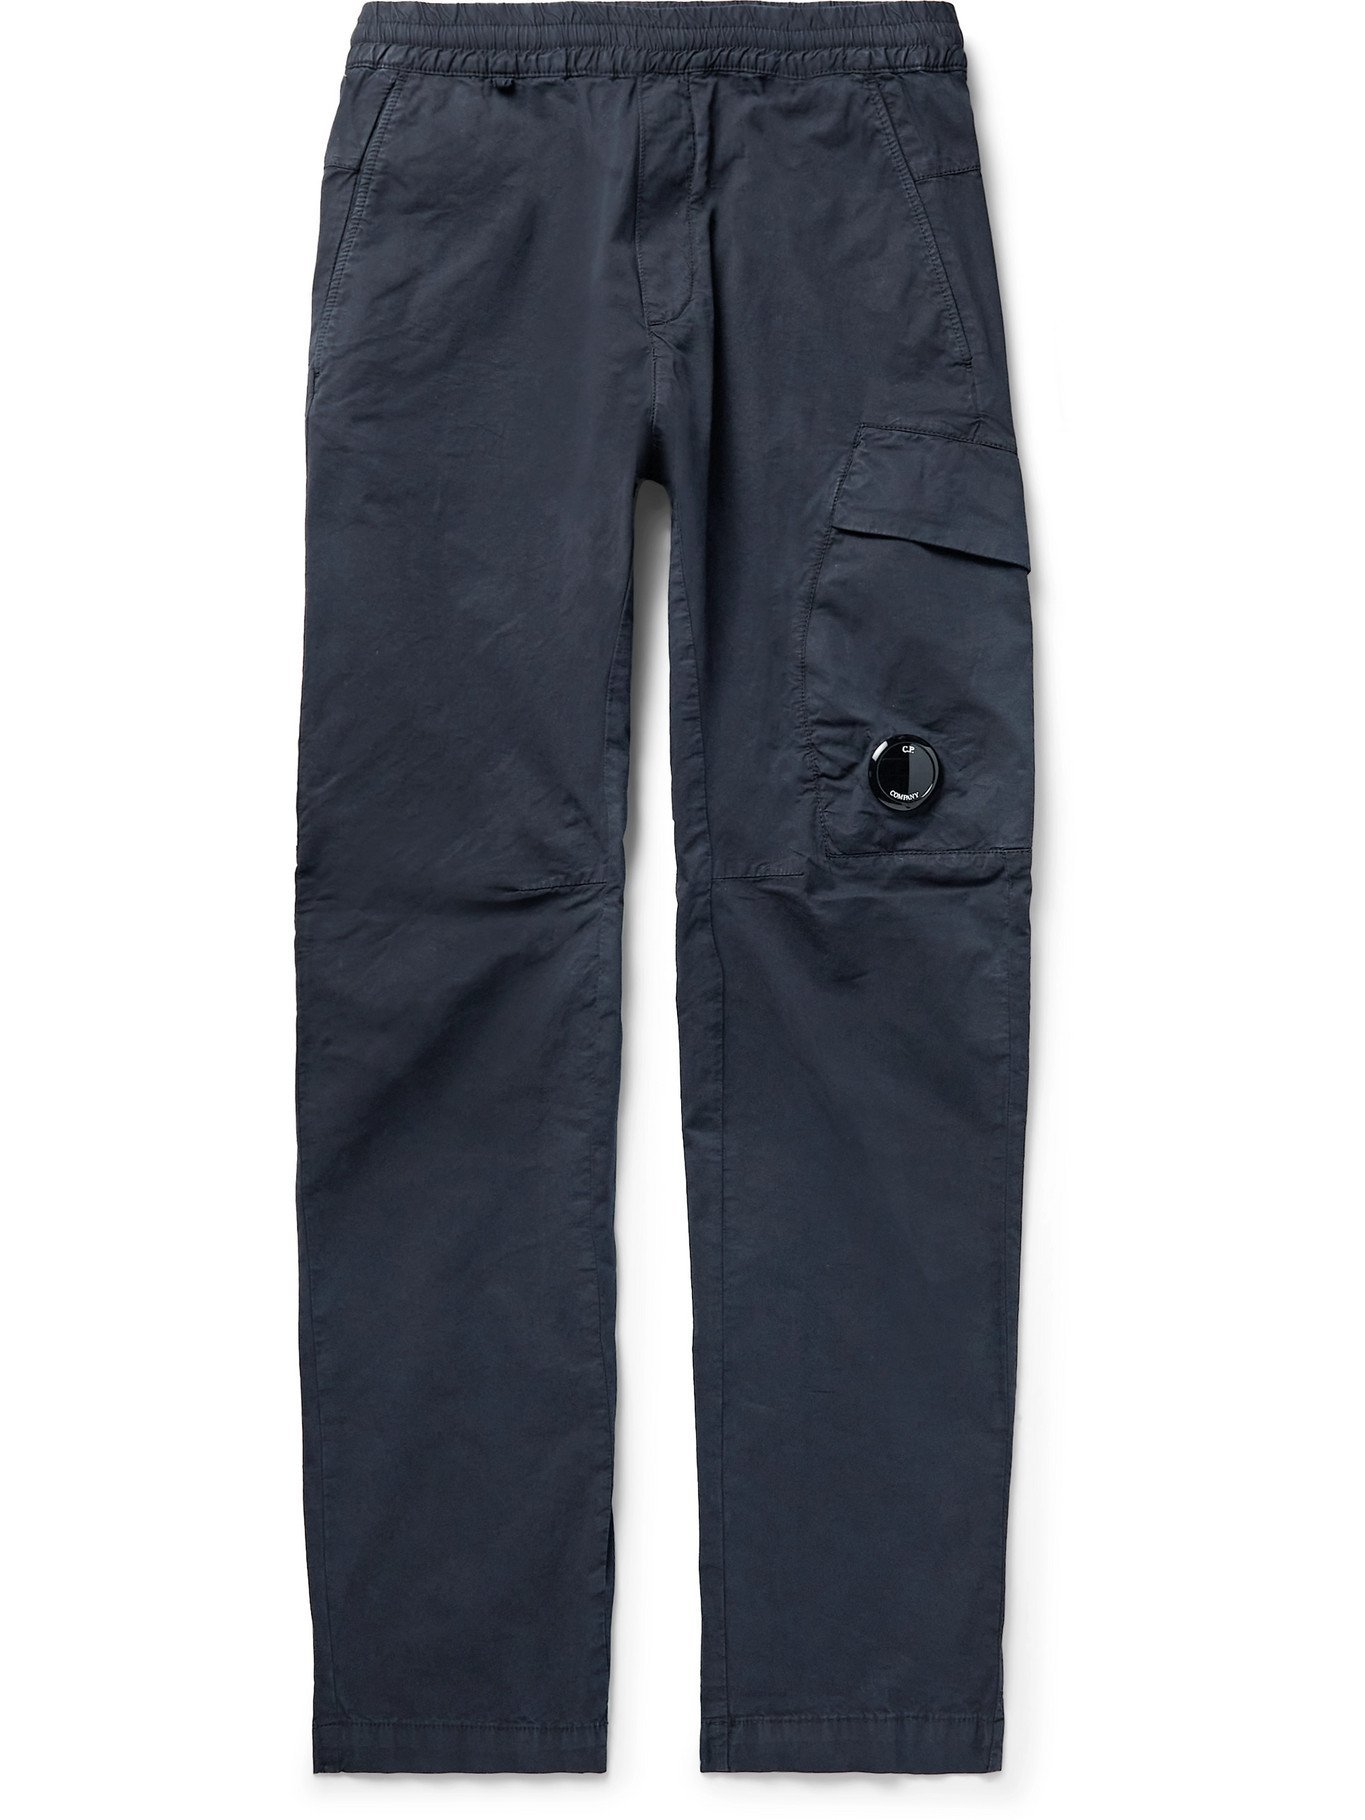 Photo: C.P. COMPANY - Garment-Dyed Logo-Appliquéd Stretch-Cotton Cargo Trousers - Blue - IT 46